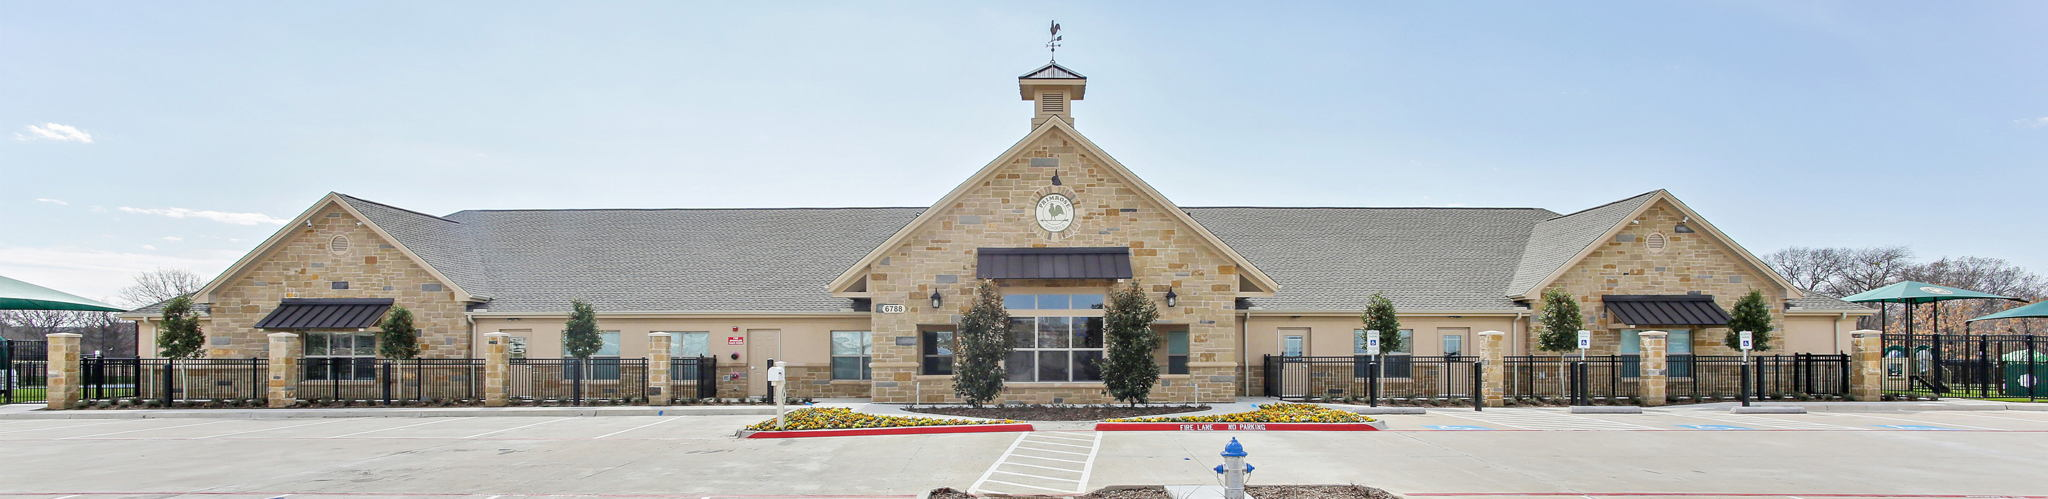 image of the exterior front of Primrose School of Plano at Headquarters